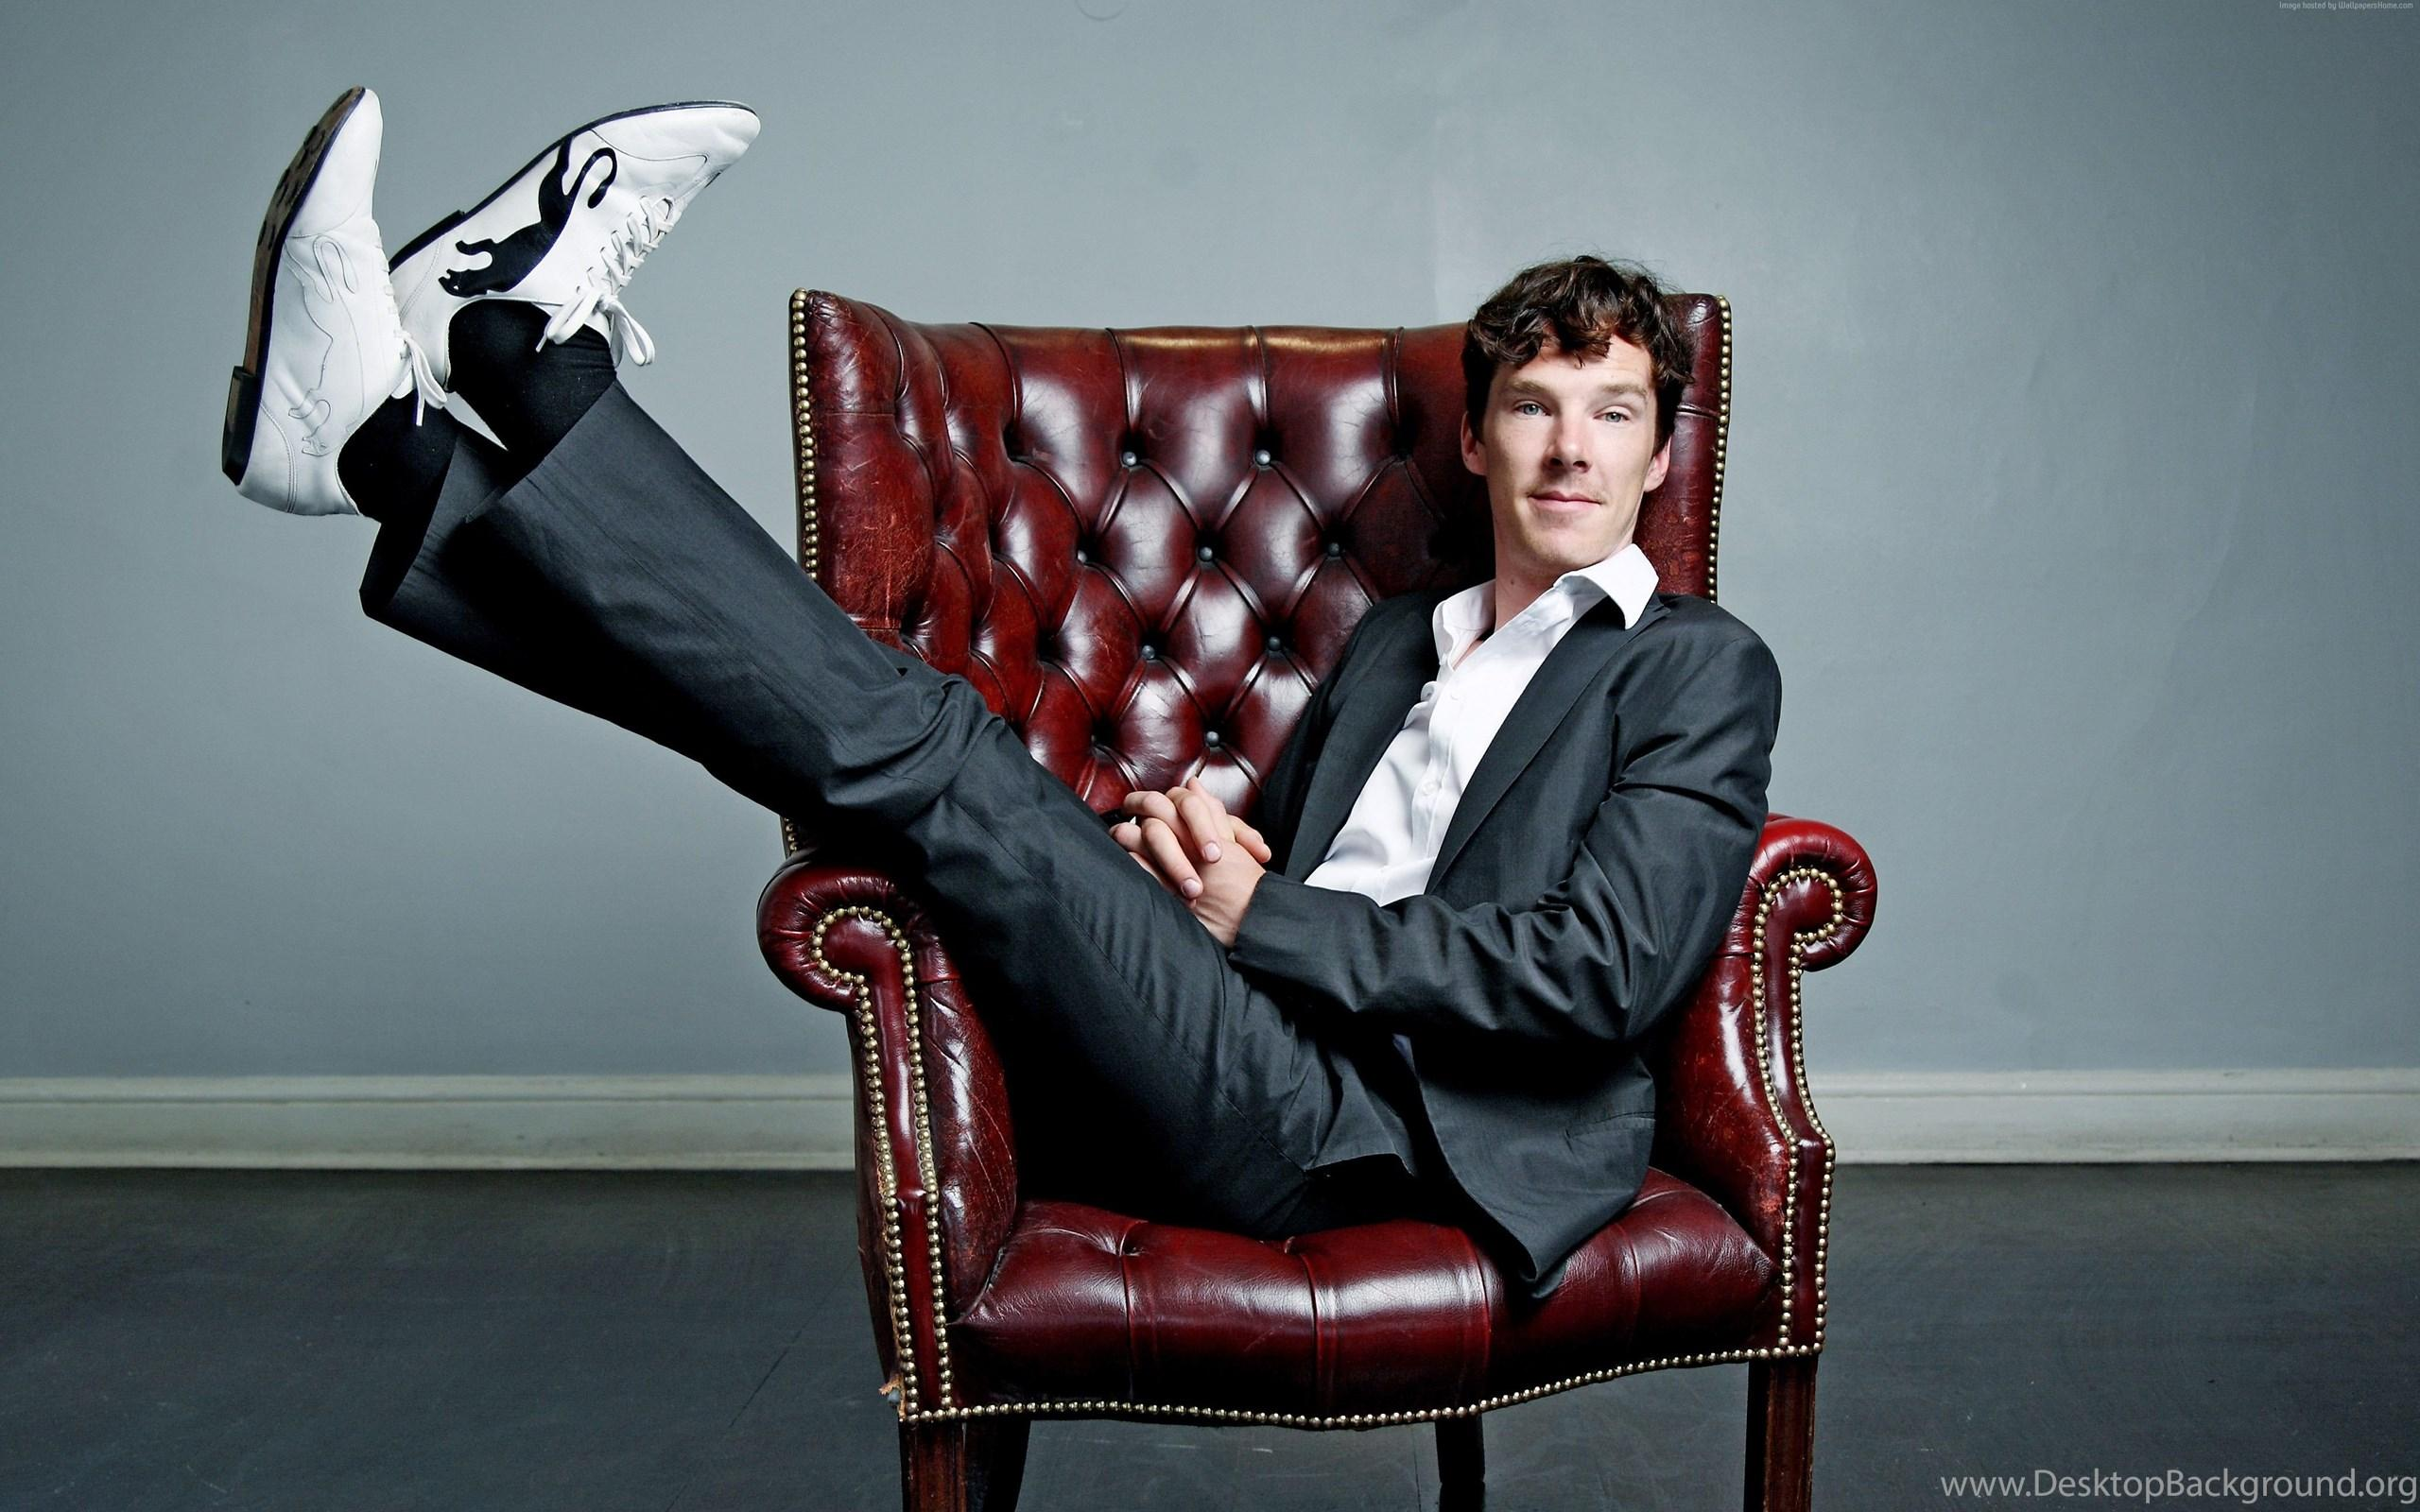 Benedict Cumberbatch Wallpaper, Celebrities / Recent: Benedict